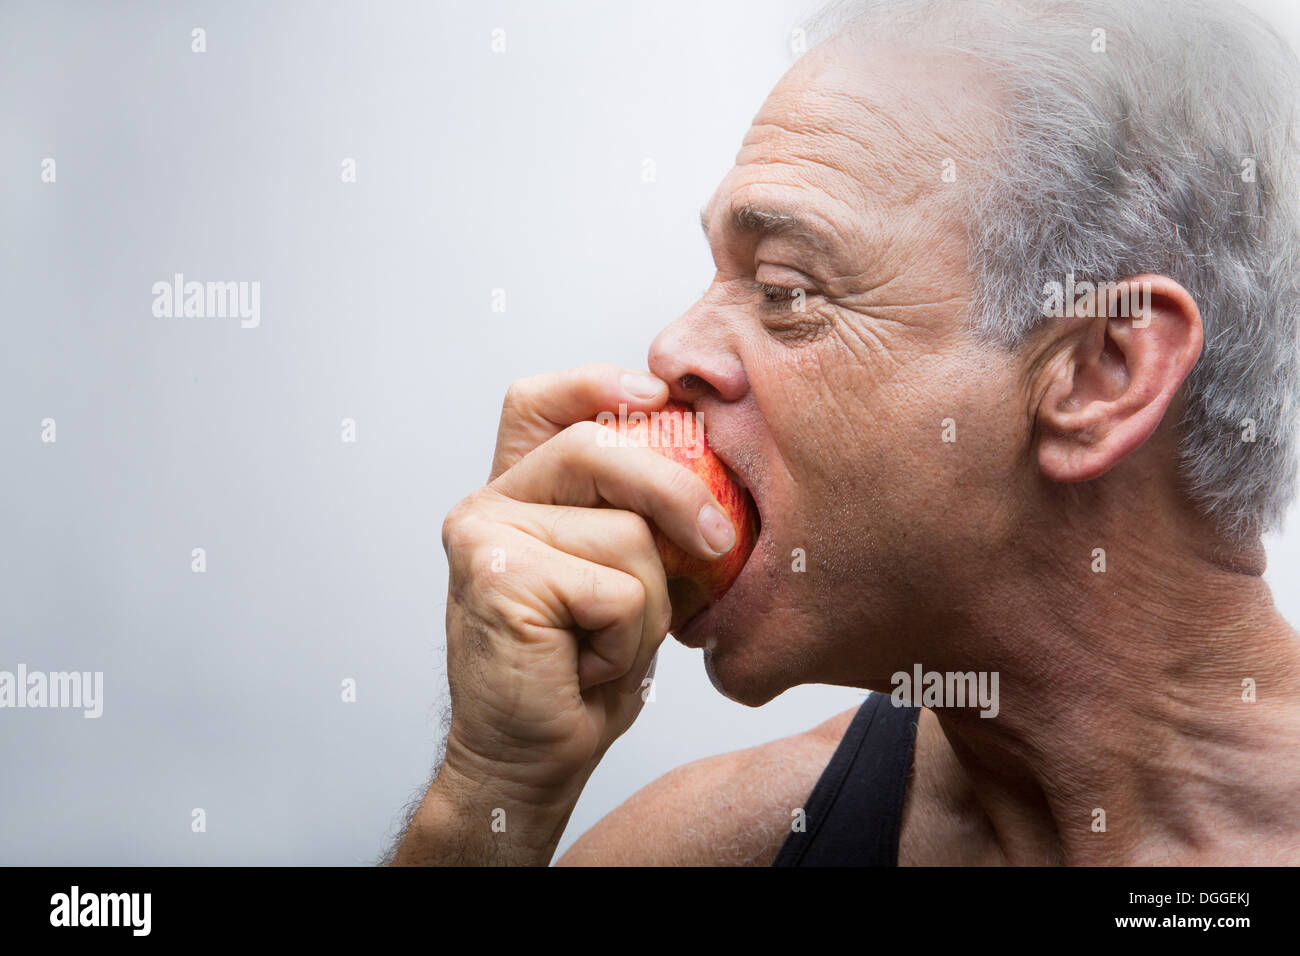 Senior man eating apple, close up - Stock Image